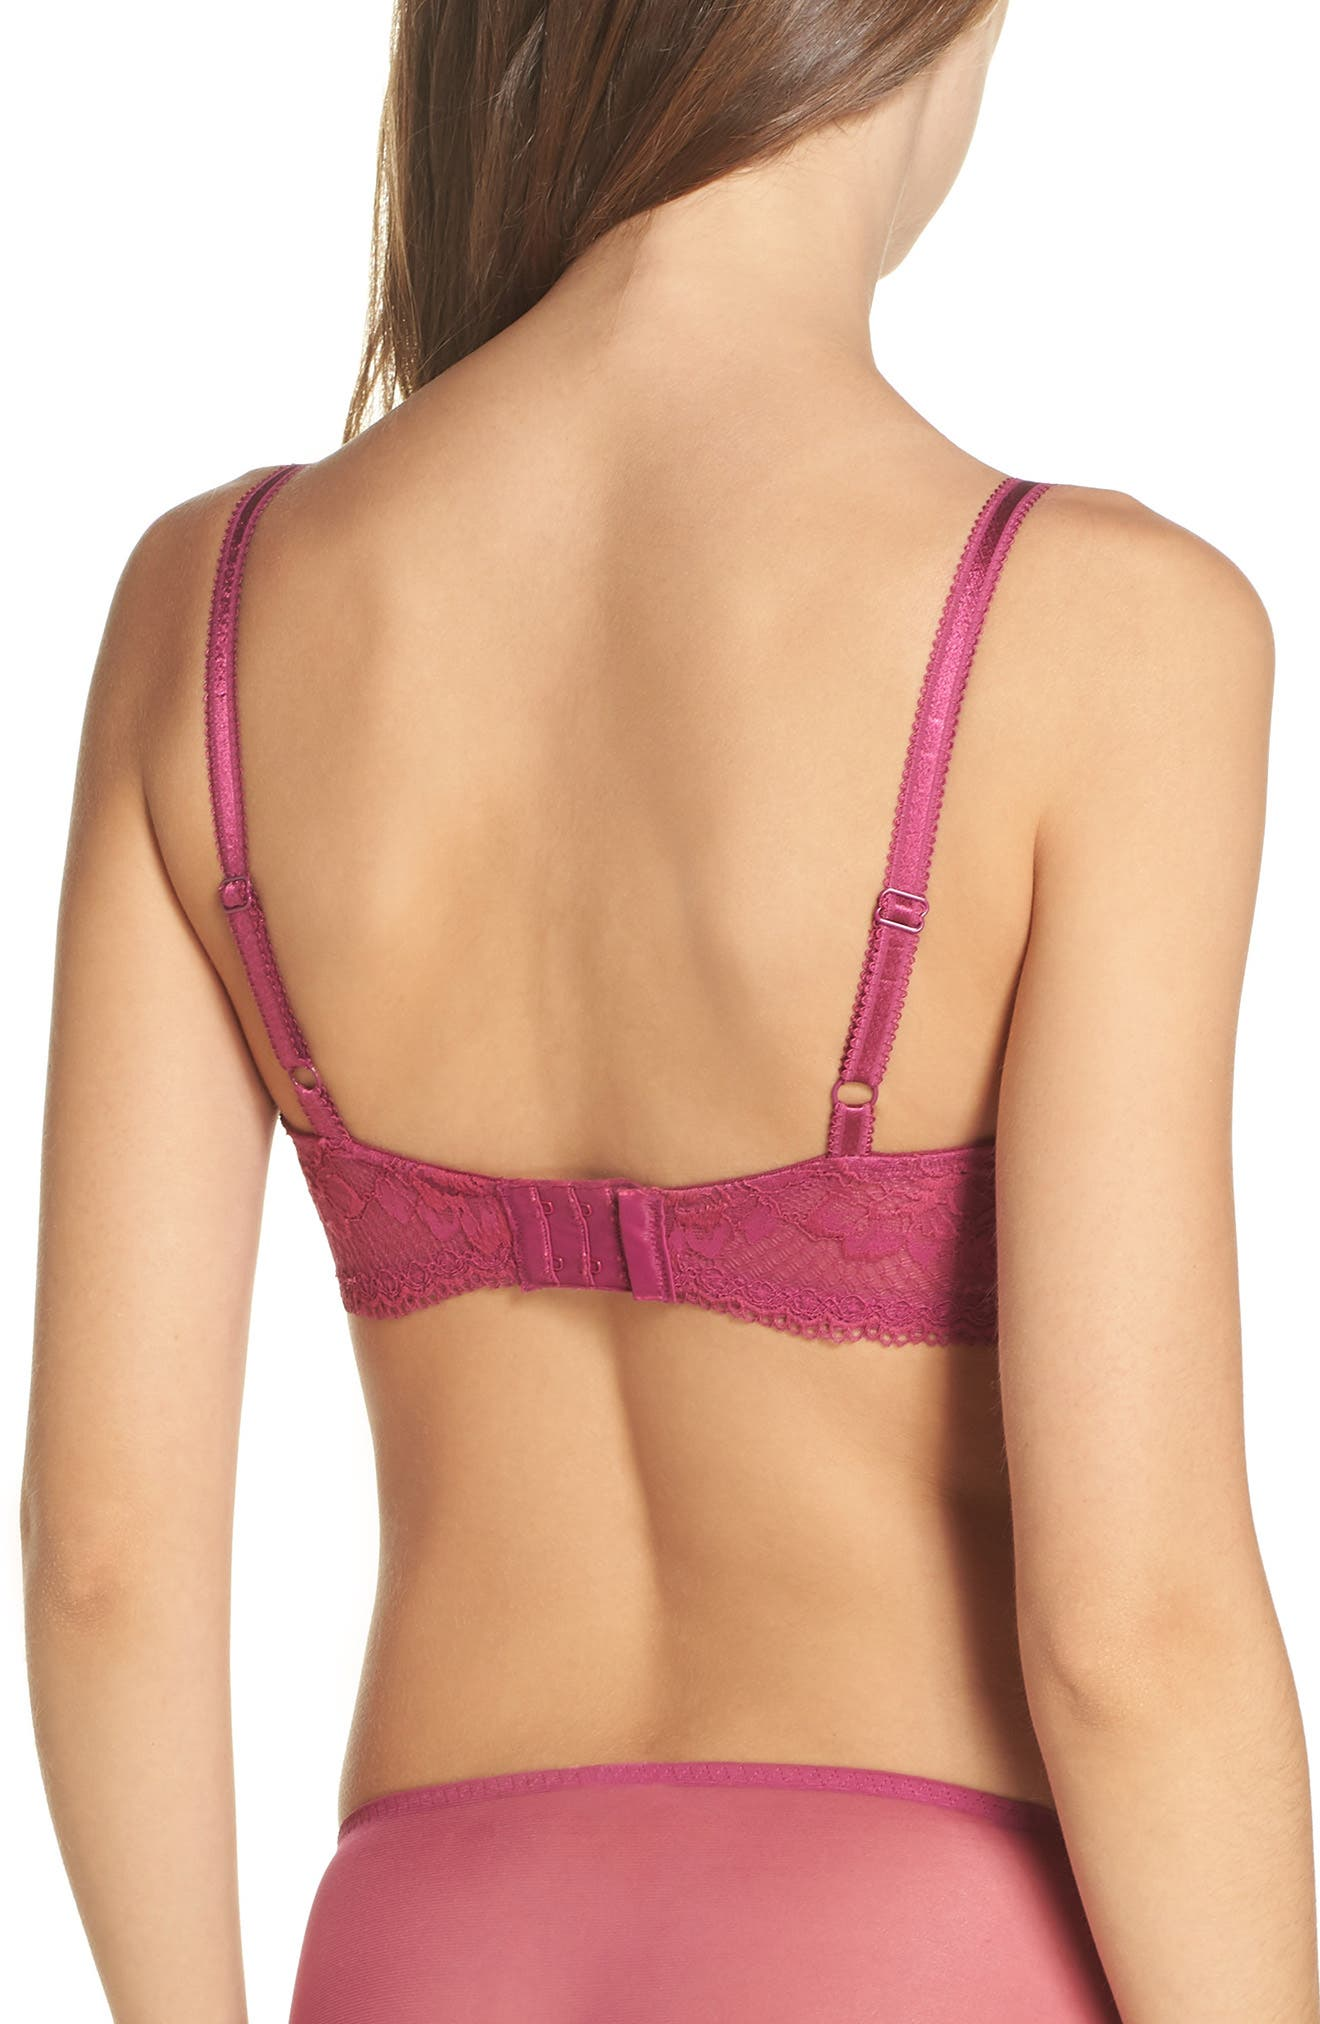 Lace to Love Underwire Bra,                             Alternate thumbnail 2, color,                             BOYSENBERRY